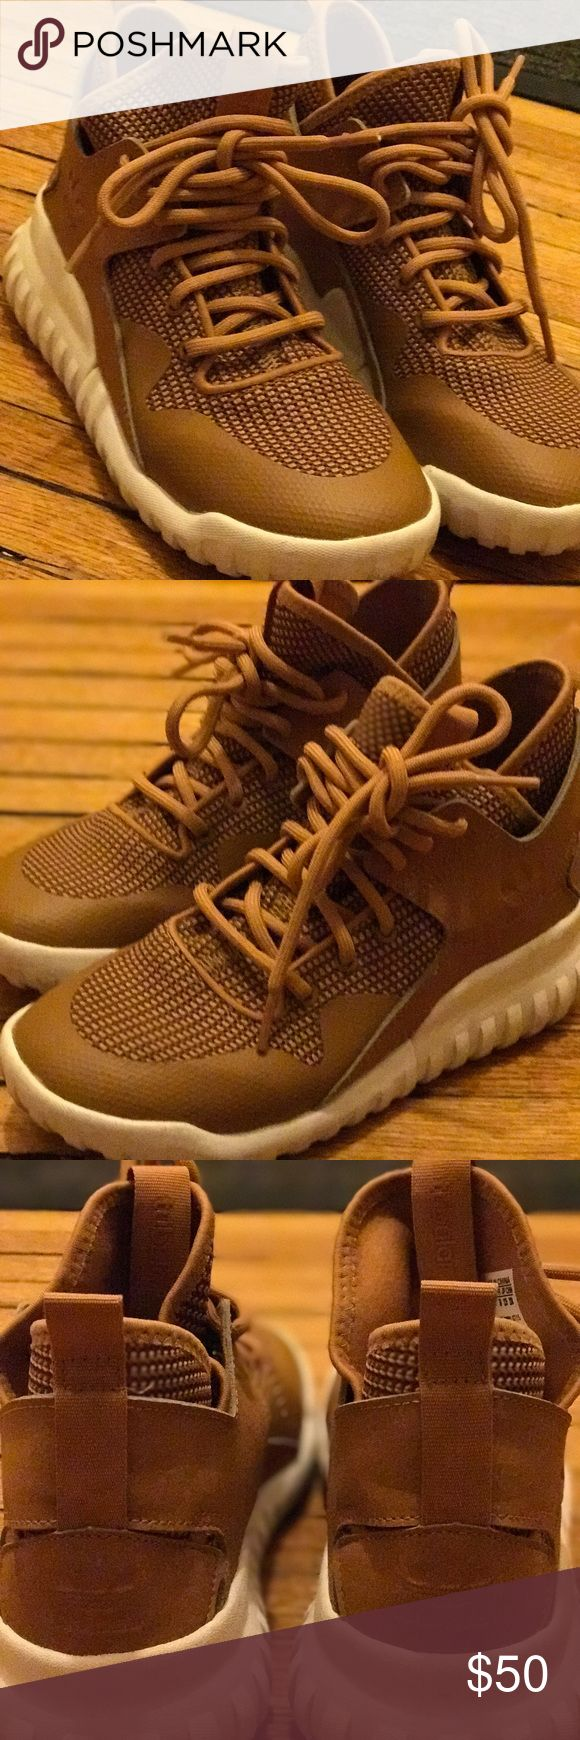 Adidas kid x tubular Like new worn only 2 times. No scratches. Clean. No box. Adidas Shoes Sneakers